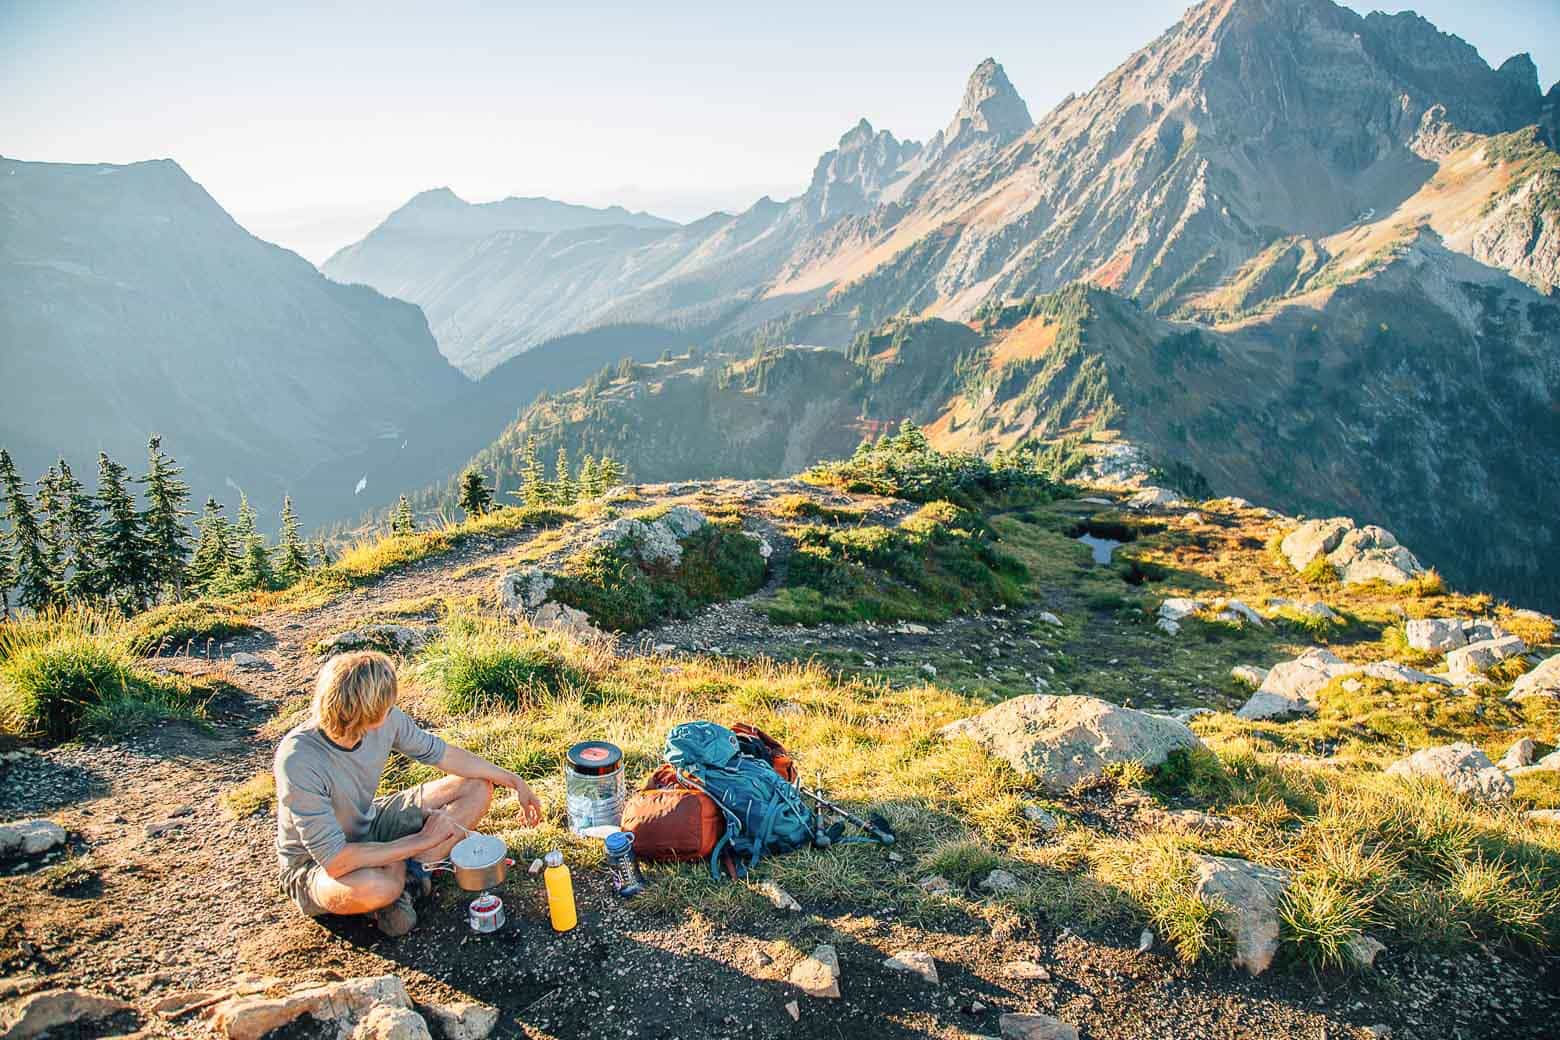 The Best Backpacking Food Ideas - Backpacking Breakfasts, Backpacking Lunch, Backpacking Dinners - we show you our favorite picks from our time on the trail!